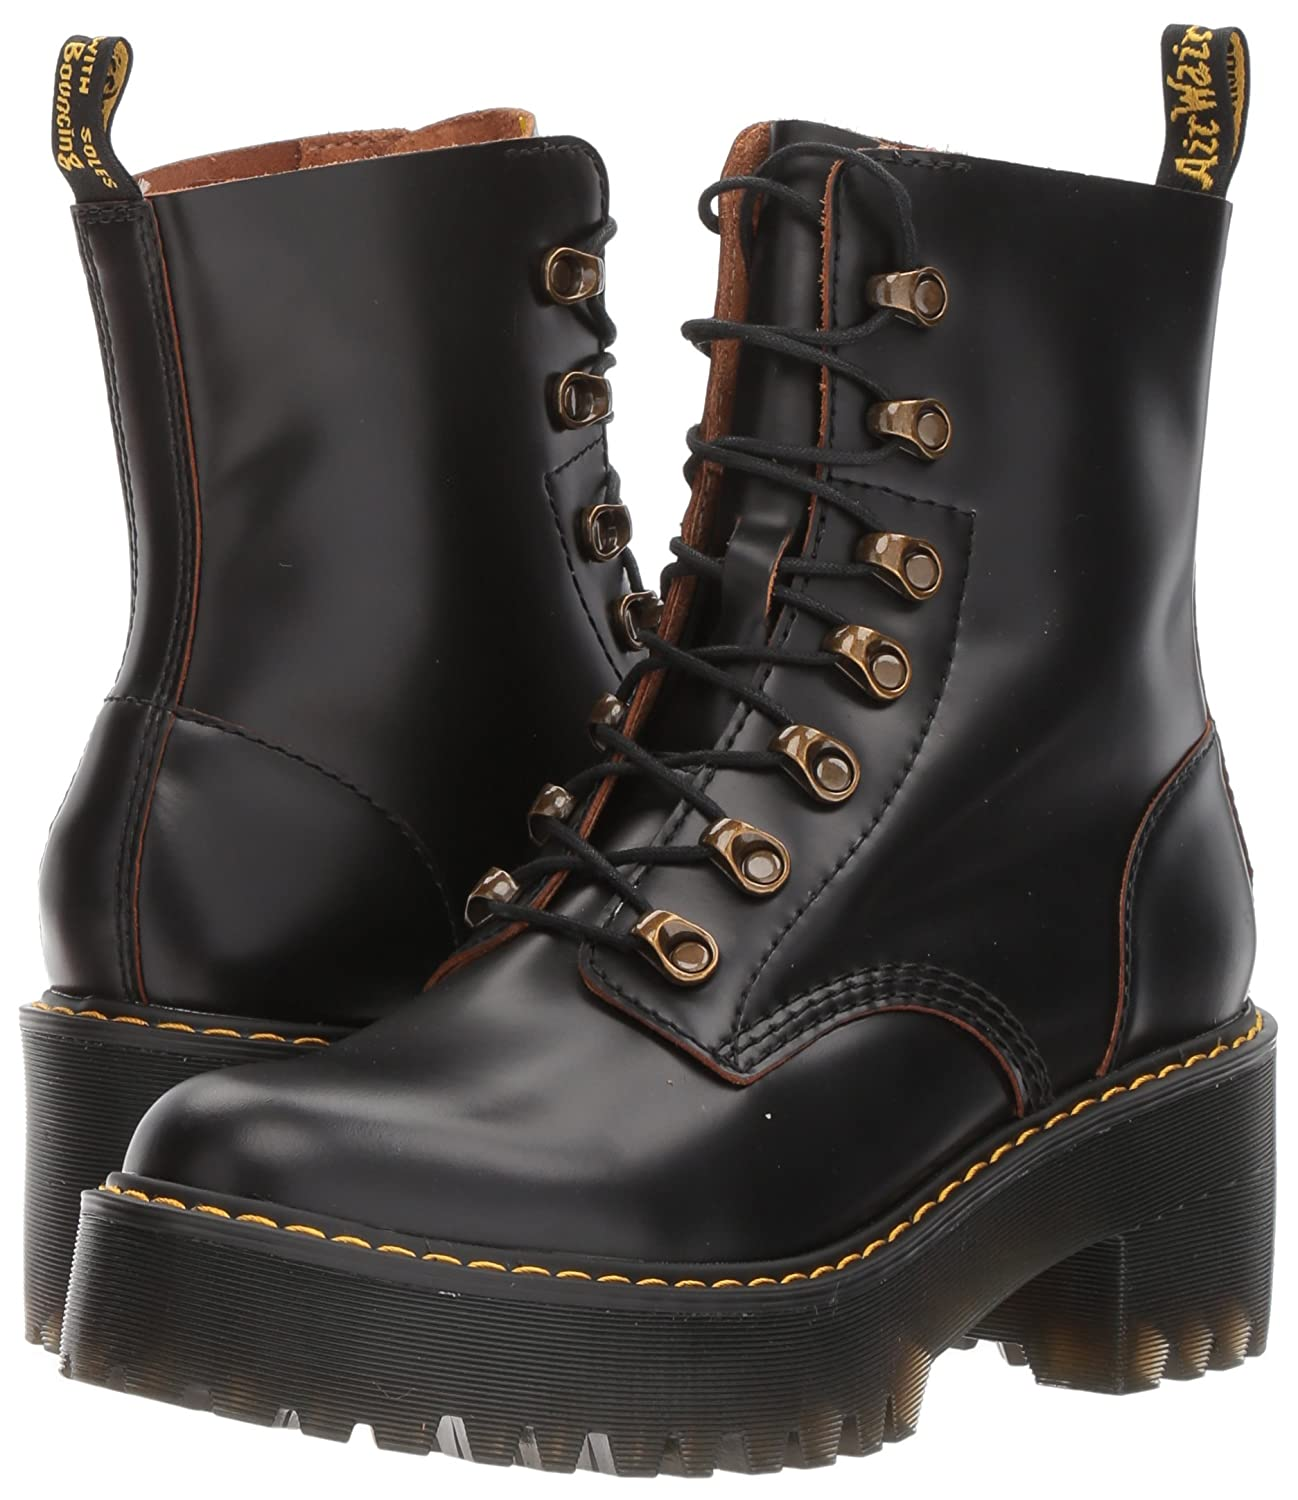 Dr. Martens Women's 1460 B01MT476U7 5 M UK (7 US)|Black